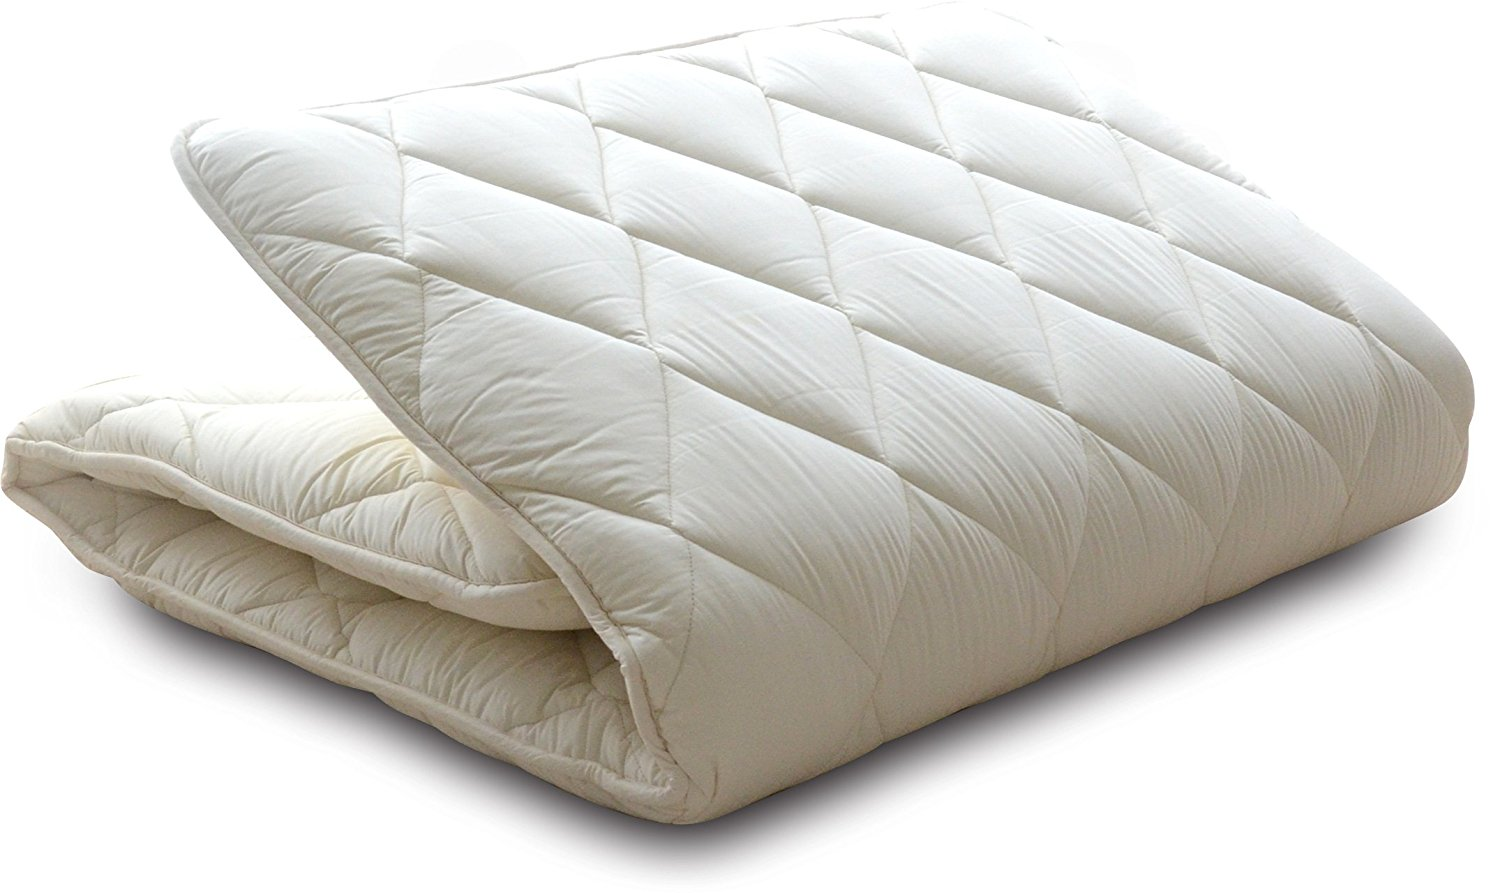 emoor japanese traditional futon mattress  AIOCAEW